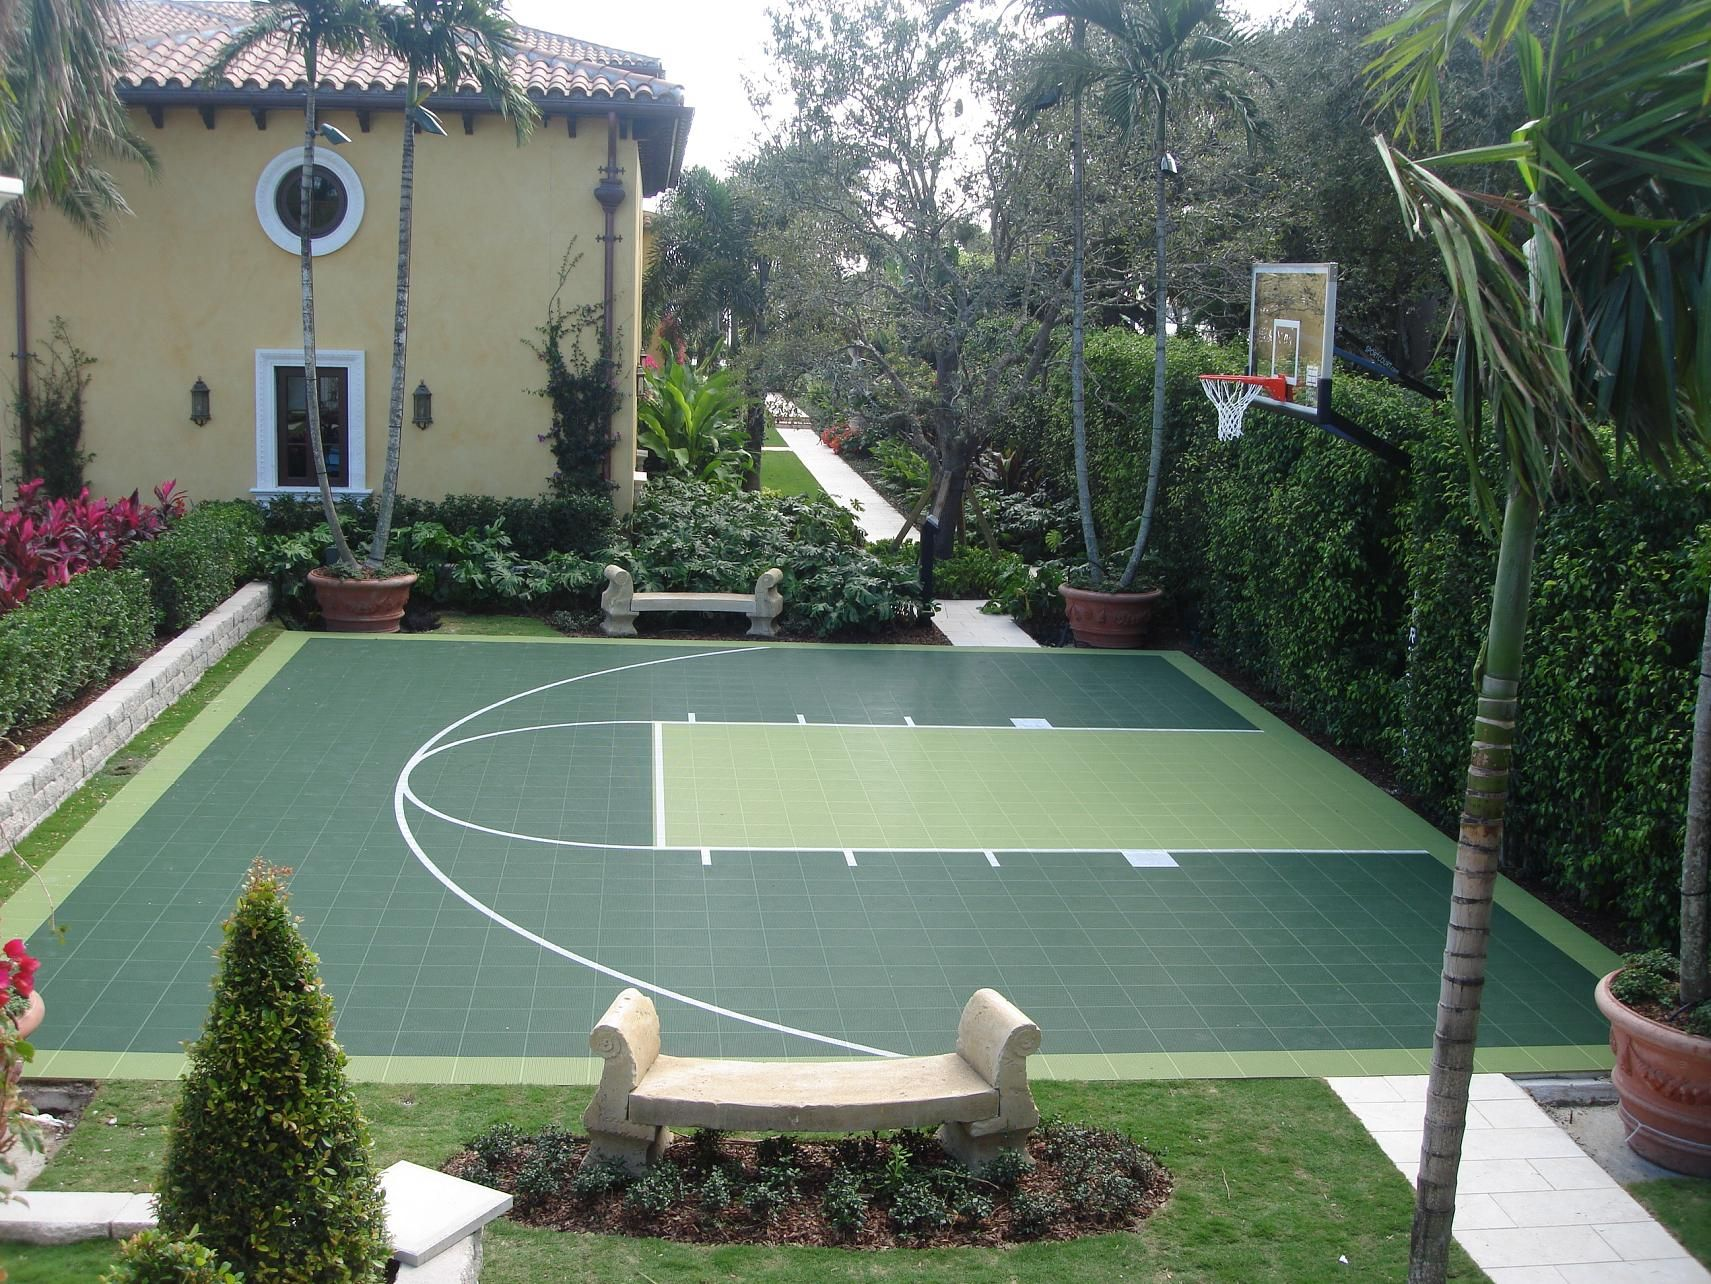 Great Backyard Ideas great backyard garden ideas wooden pergolas also tend to be more inviting and cozy cause Check Out This Two Tone Green Basketball Half Court Great Backyard Fun All Year